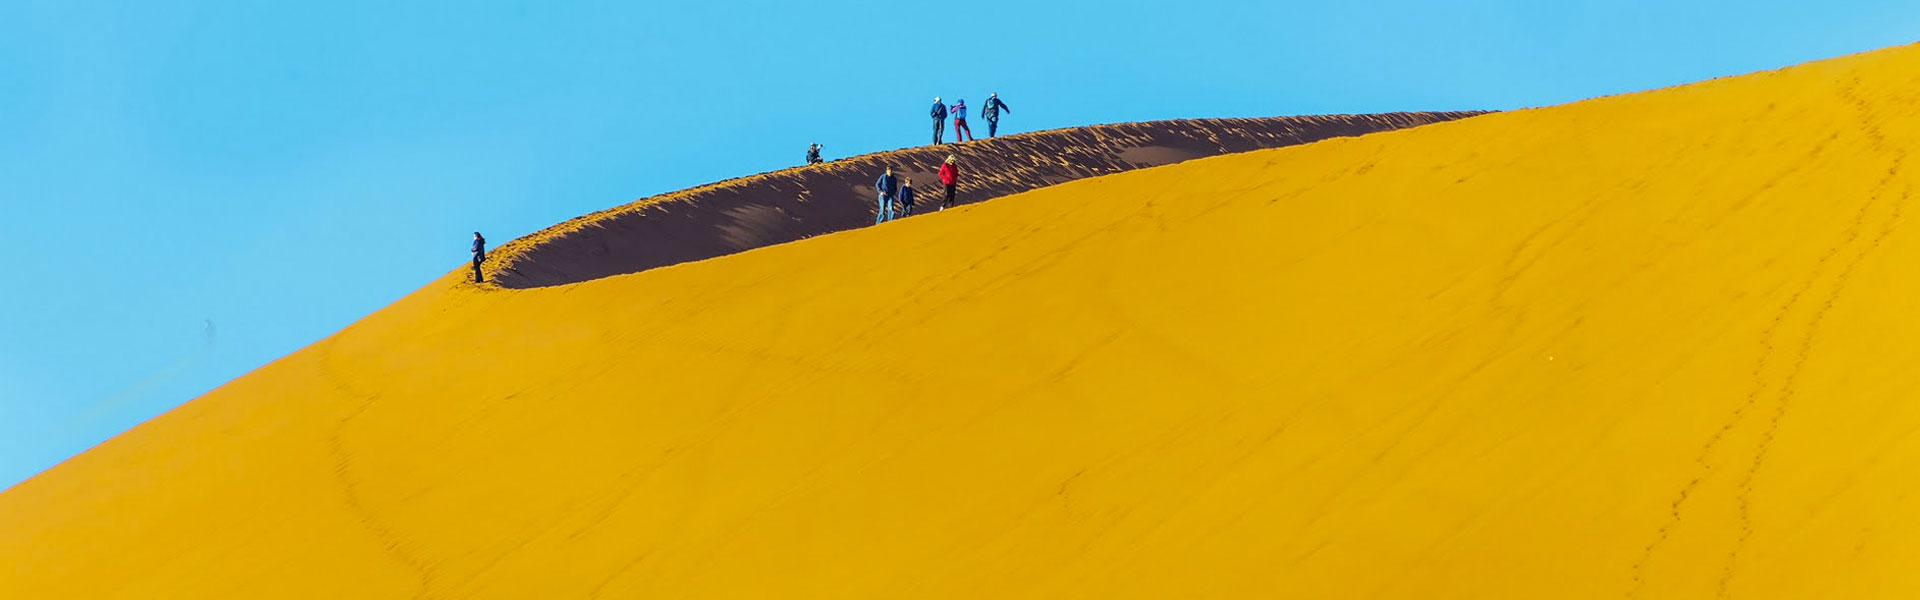 Sand dunes of Namibia's Namib desert with groups of travellers